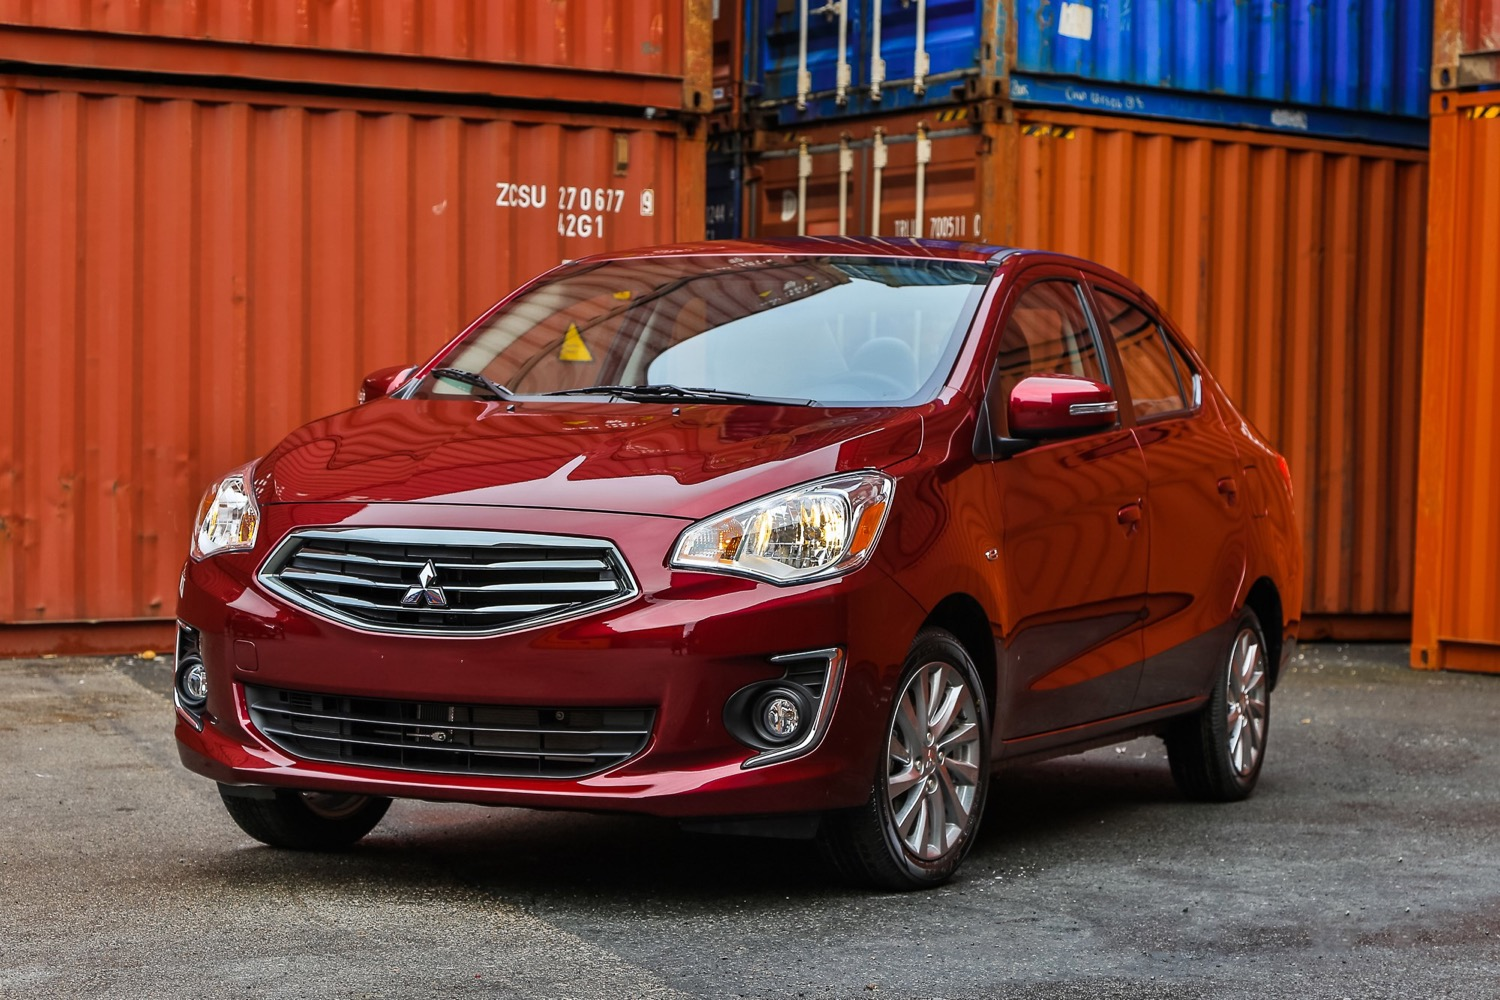 2017 Mitsubishi Mirage Performance Review - The Car Connection